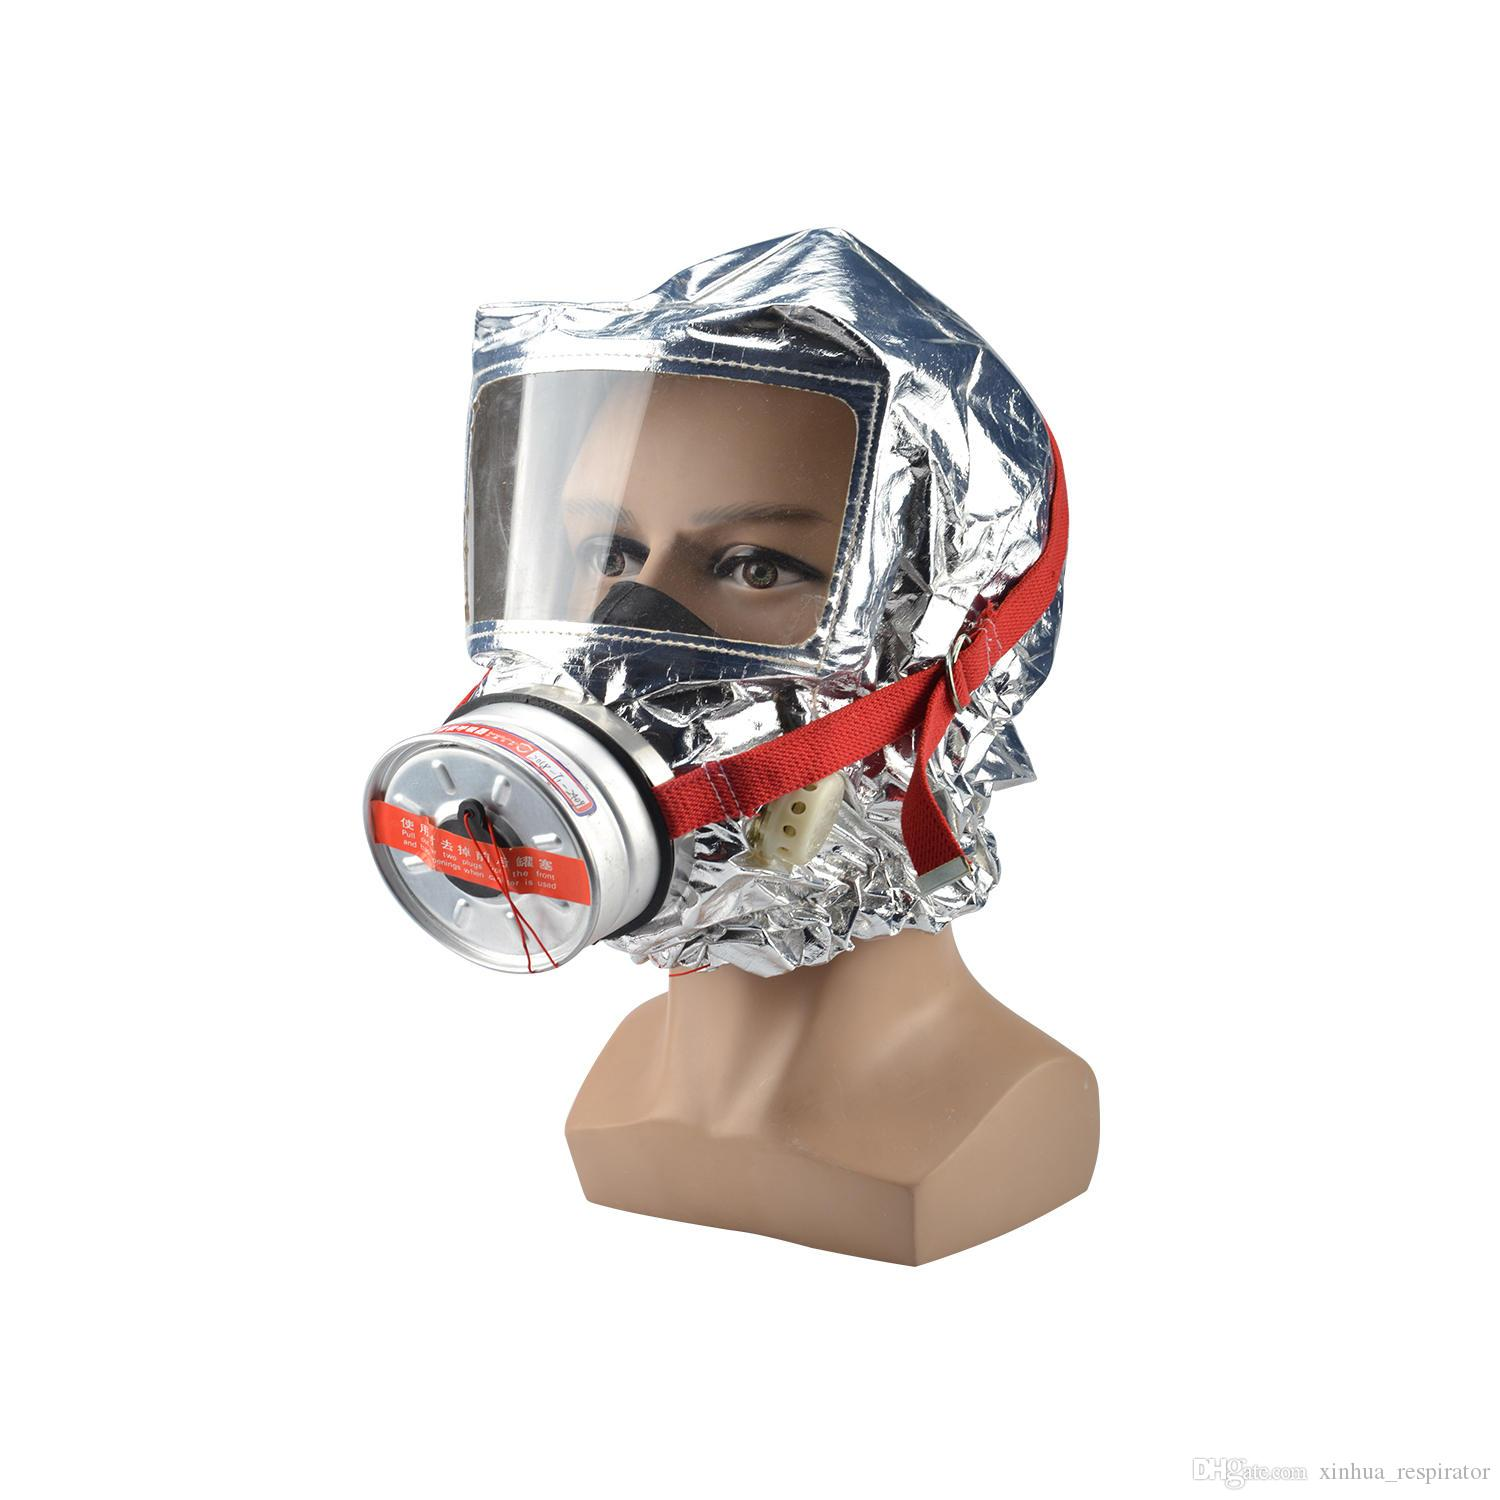 2019 FireMask Escape A Fire Safely Emergency Respiratory Protective Device  Against Smoke, Carbon Monoxide And Toxic Fumes From Xinhua_respirator,